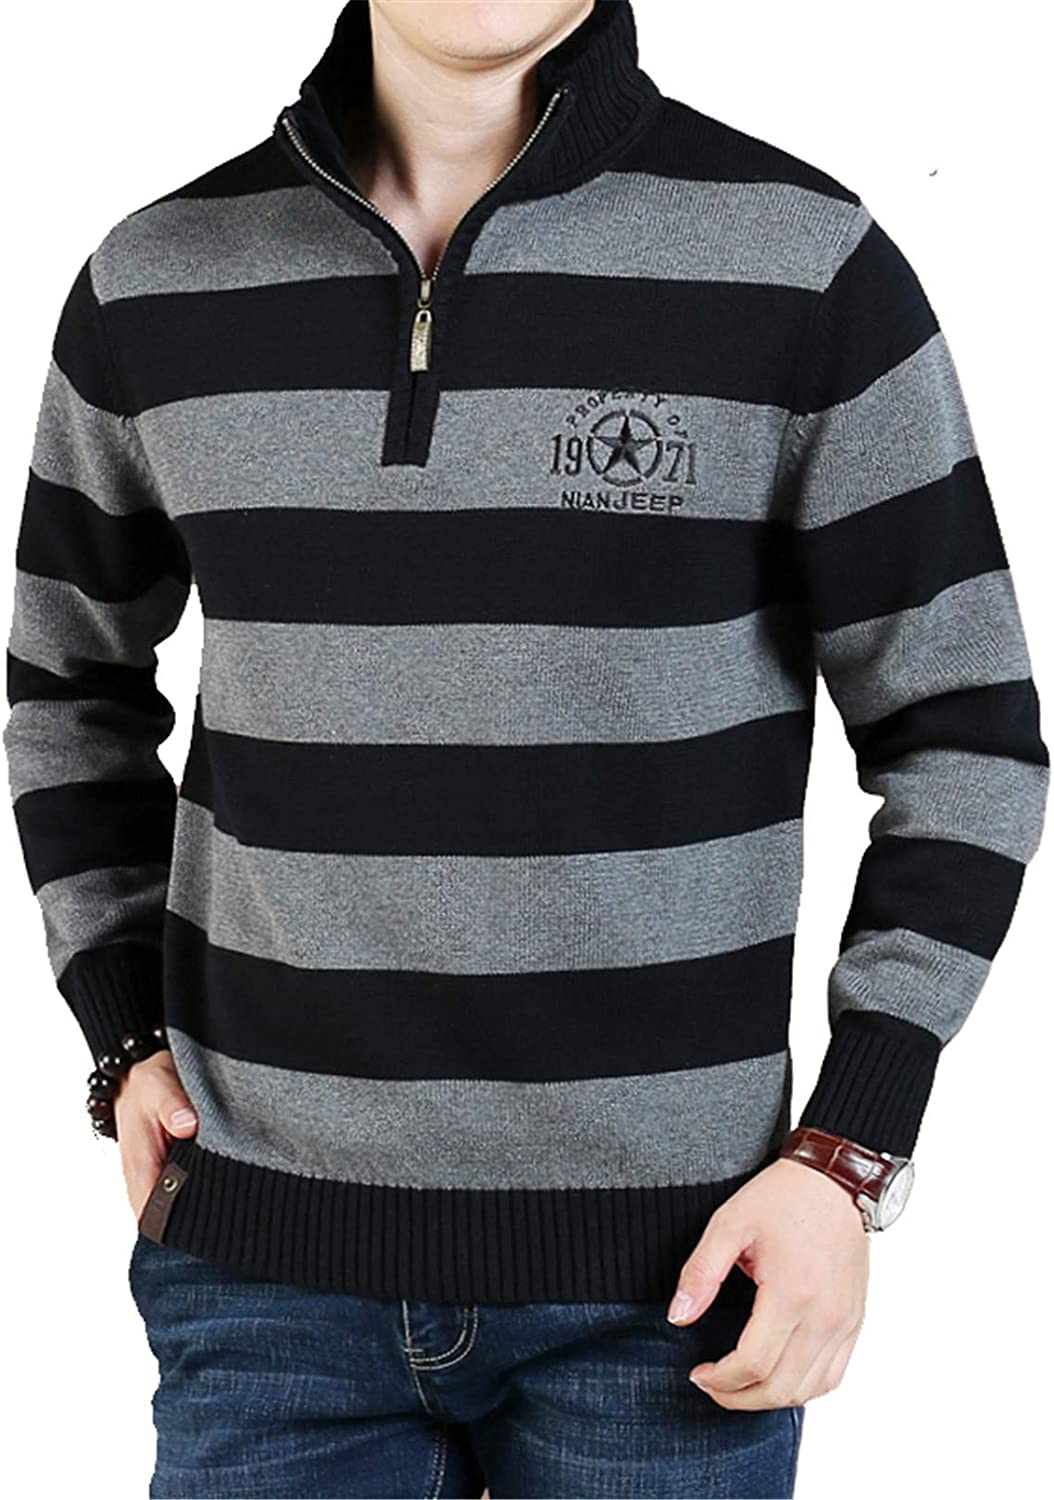 Men's Knitted Thick Pullover Jumpers Sweater Long Sleeve Fall Winter Warm Cardigans Knitwear Outwear,002,XXXL